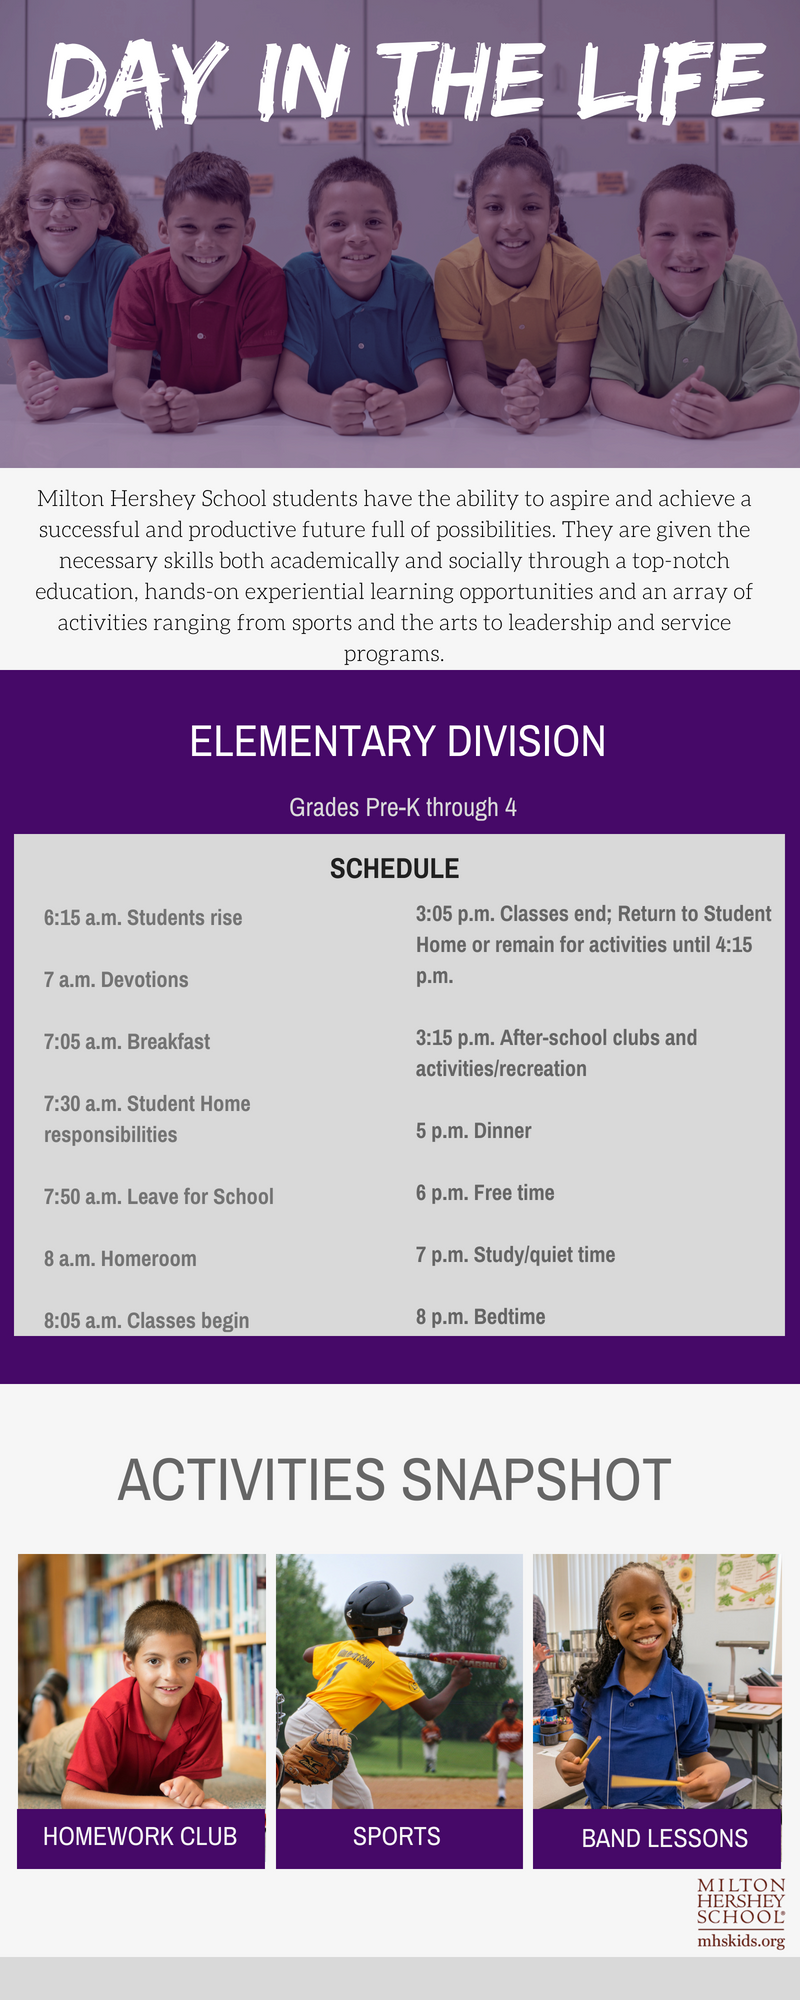 Elementary division schedule at MHS.